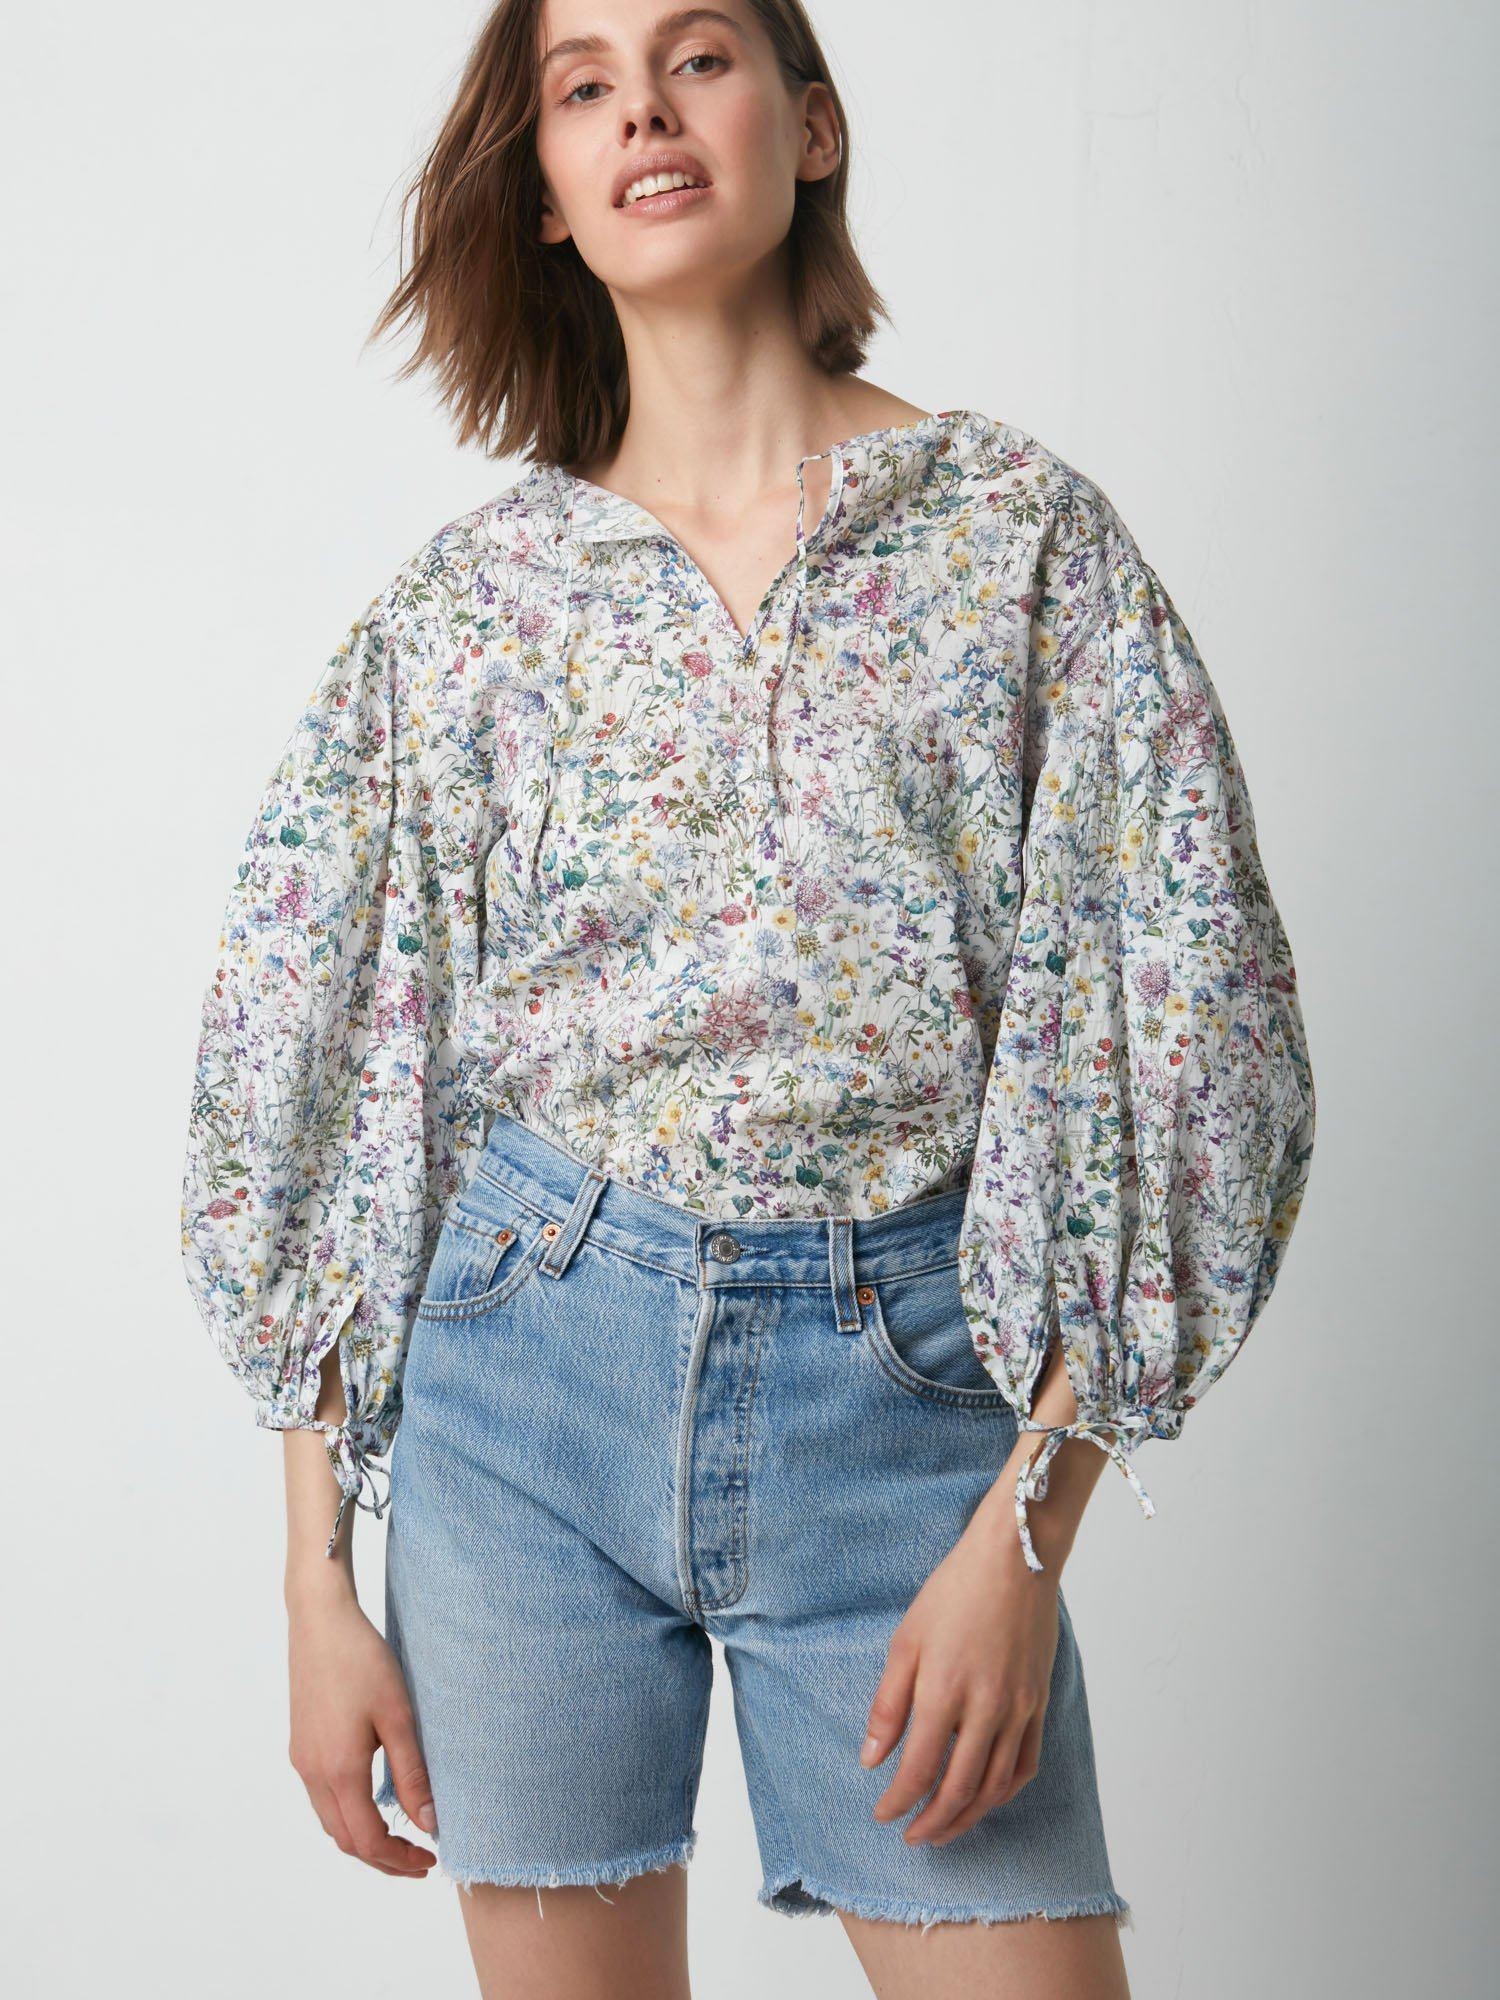 Magnolia Blouse Made With Liberty Print